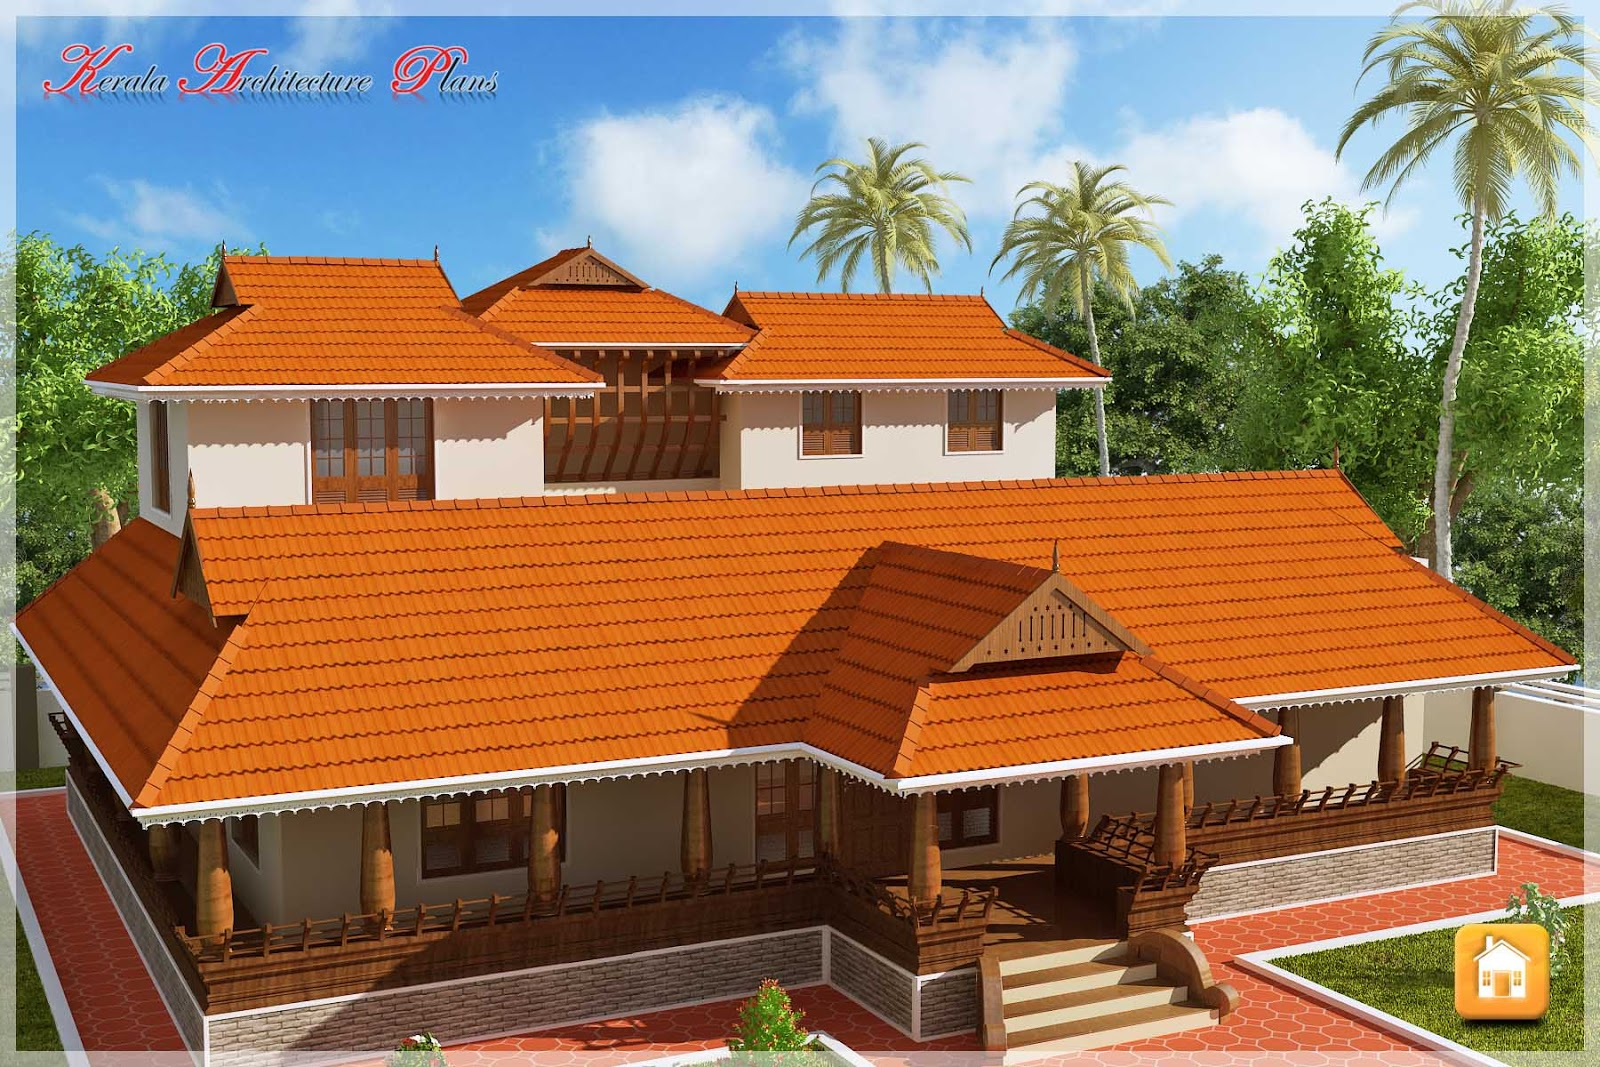 Kerala traditional style house plans joy studio design for Kerala traditional home plans